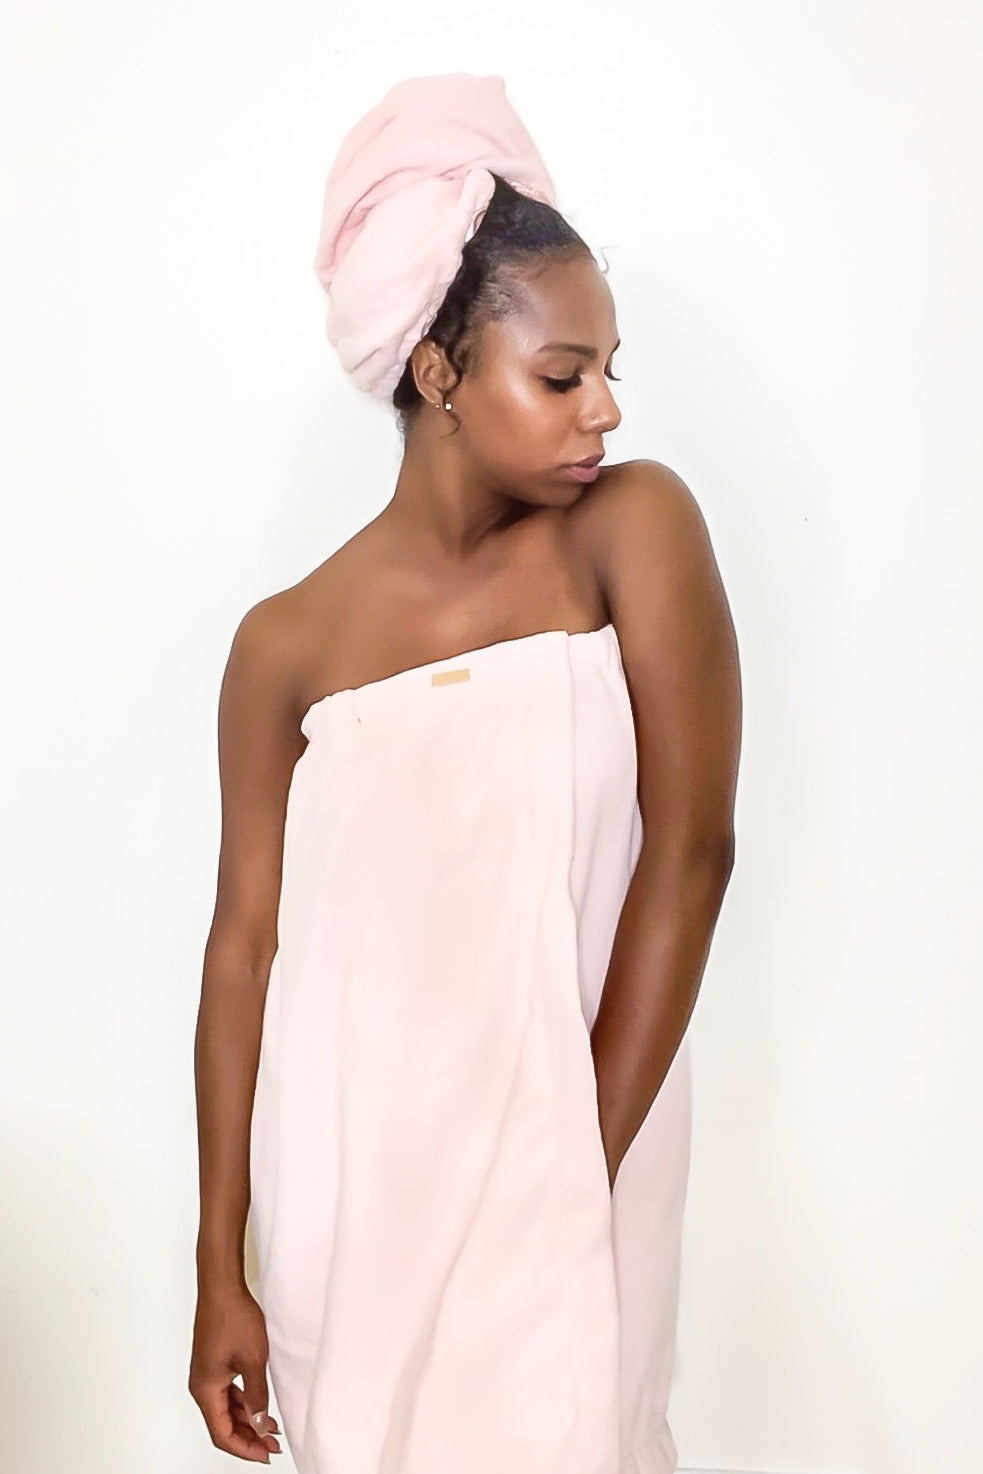 Pink Spa Bath Towel Wrap with Adjustable Closure & Elastic Top